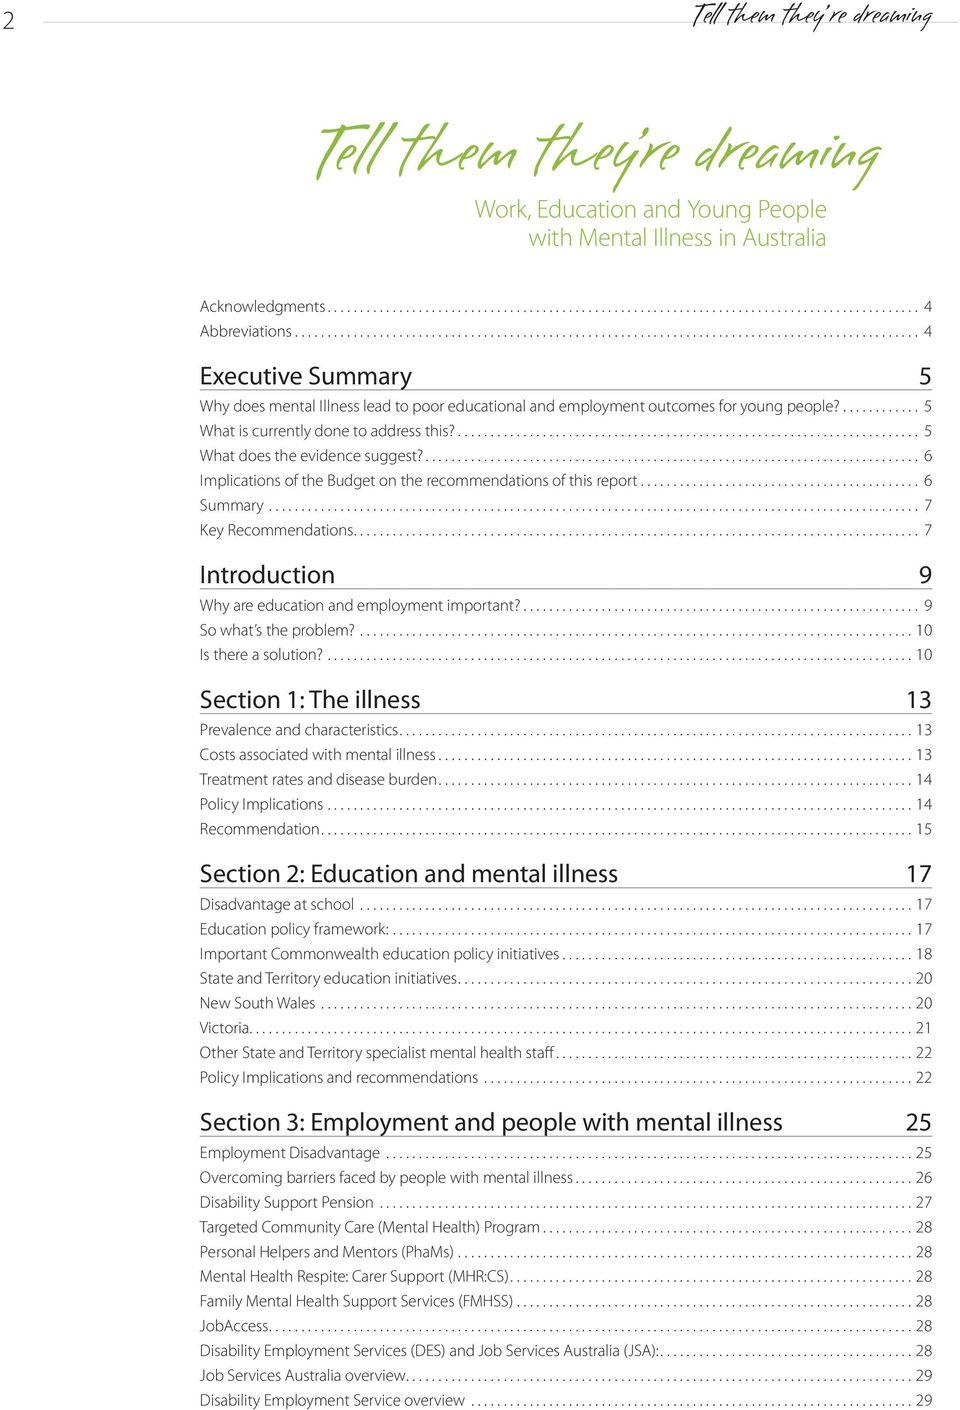 ... 6 Implications of the Budget on the recommendations of this report... 6 Summary... 7 Key Recommendations.... 7 Introduction 9 Why are education and employment important?... 9 So what s the problem?